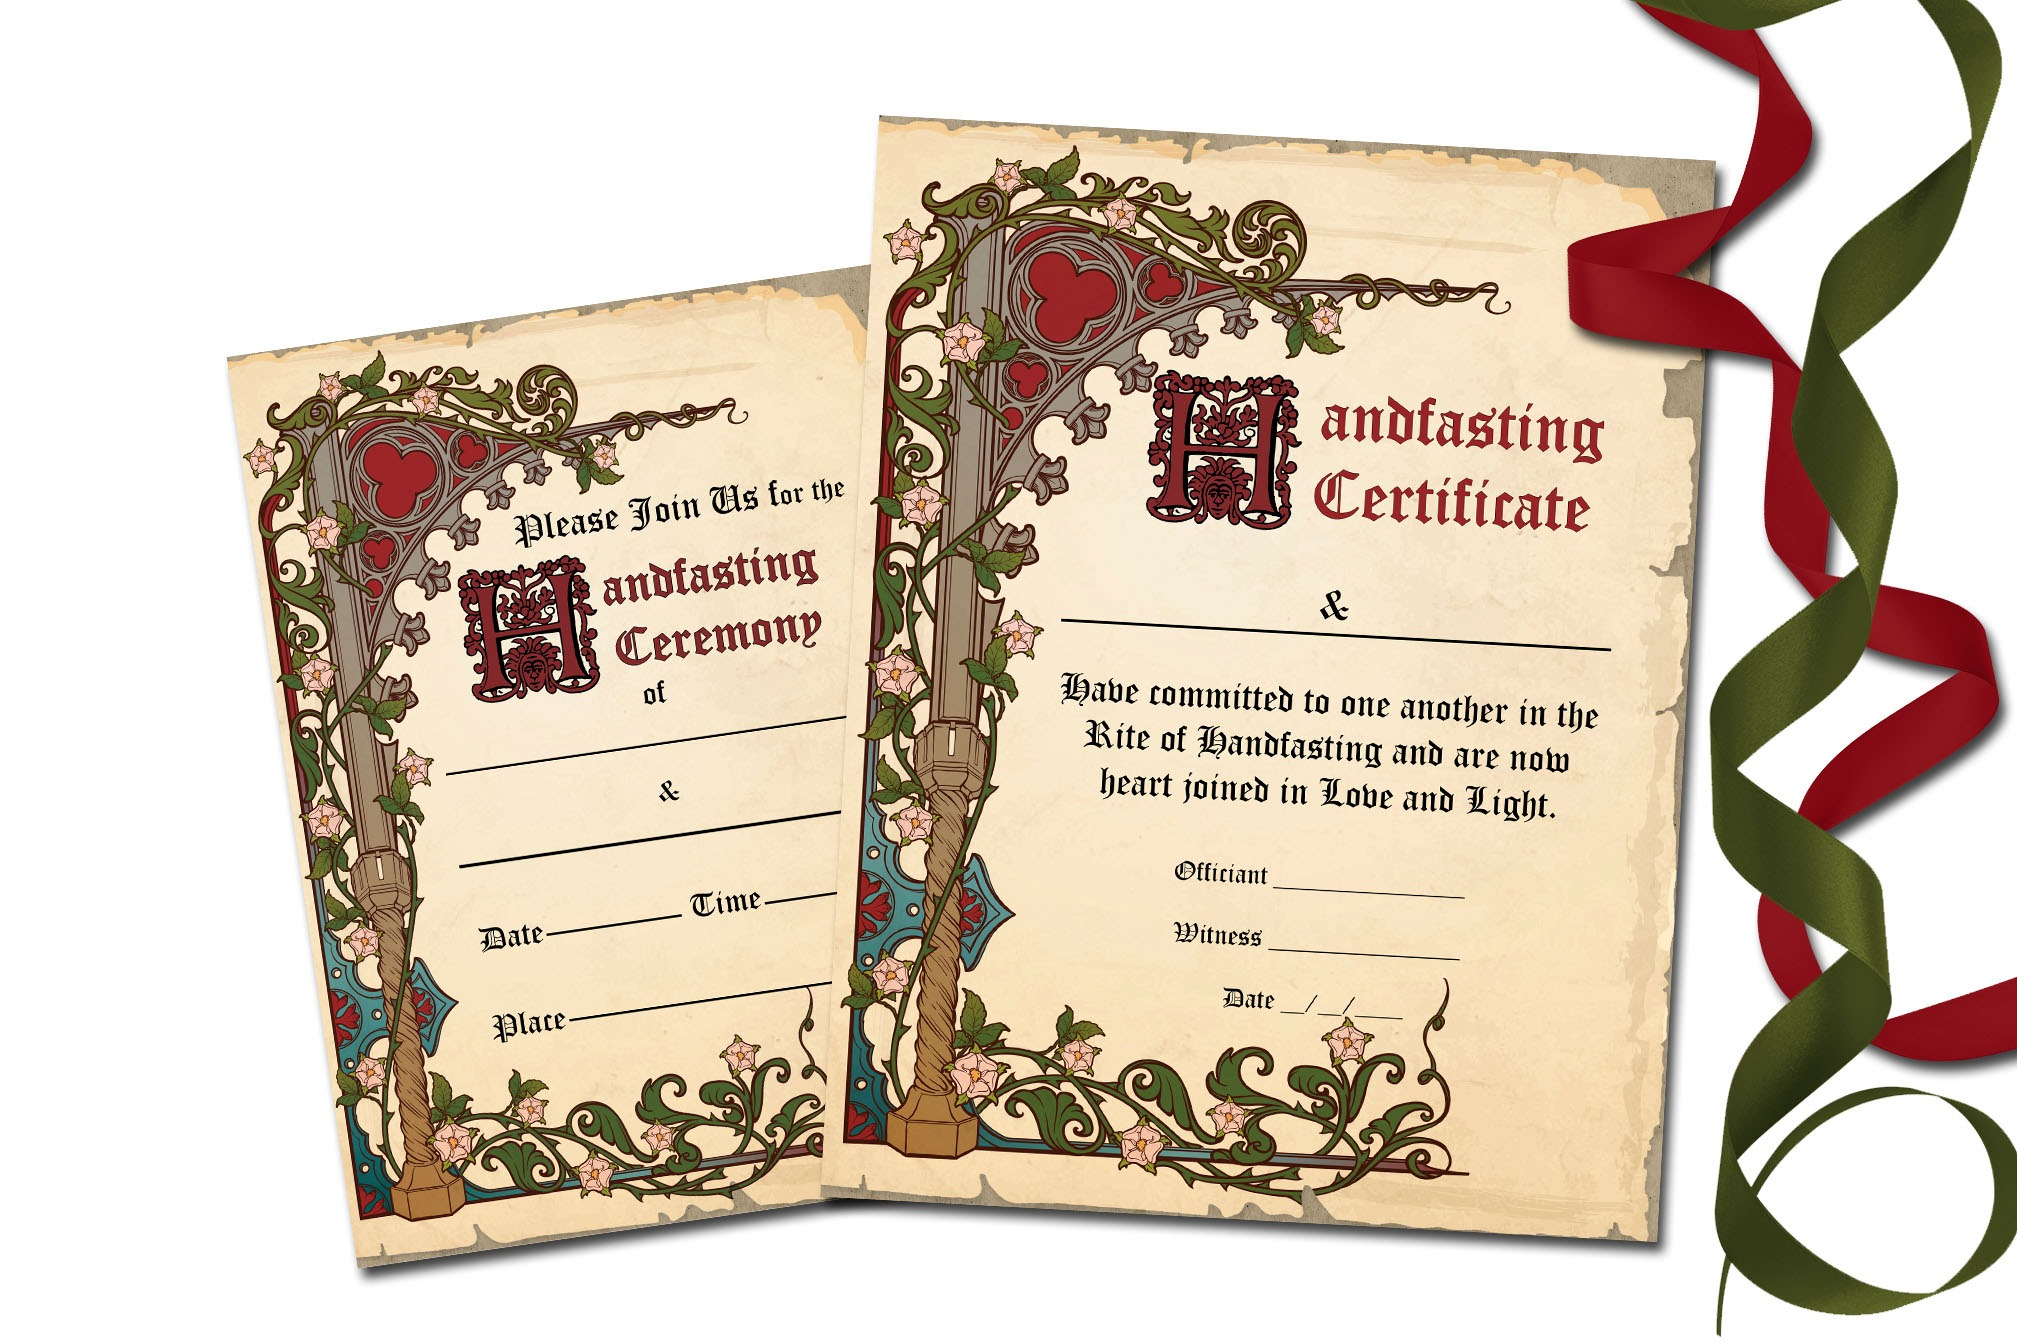 MEDIEVAL HANDFASTING Certificate & Invitation